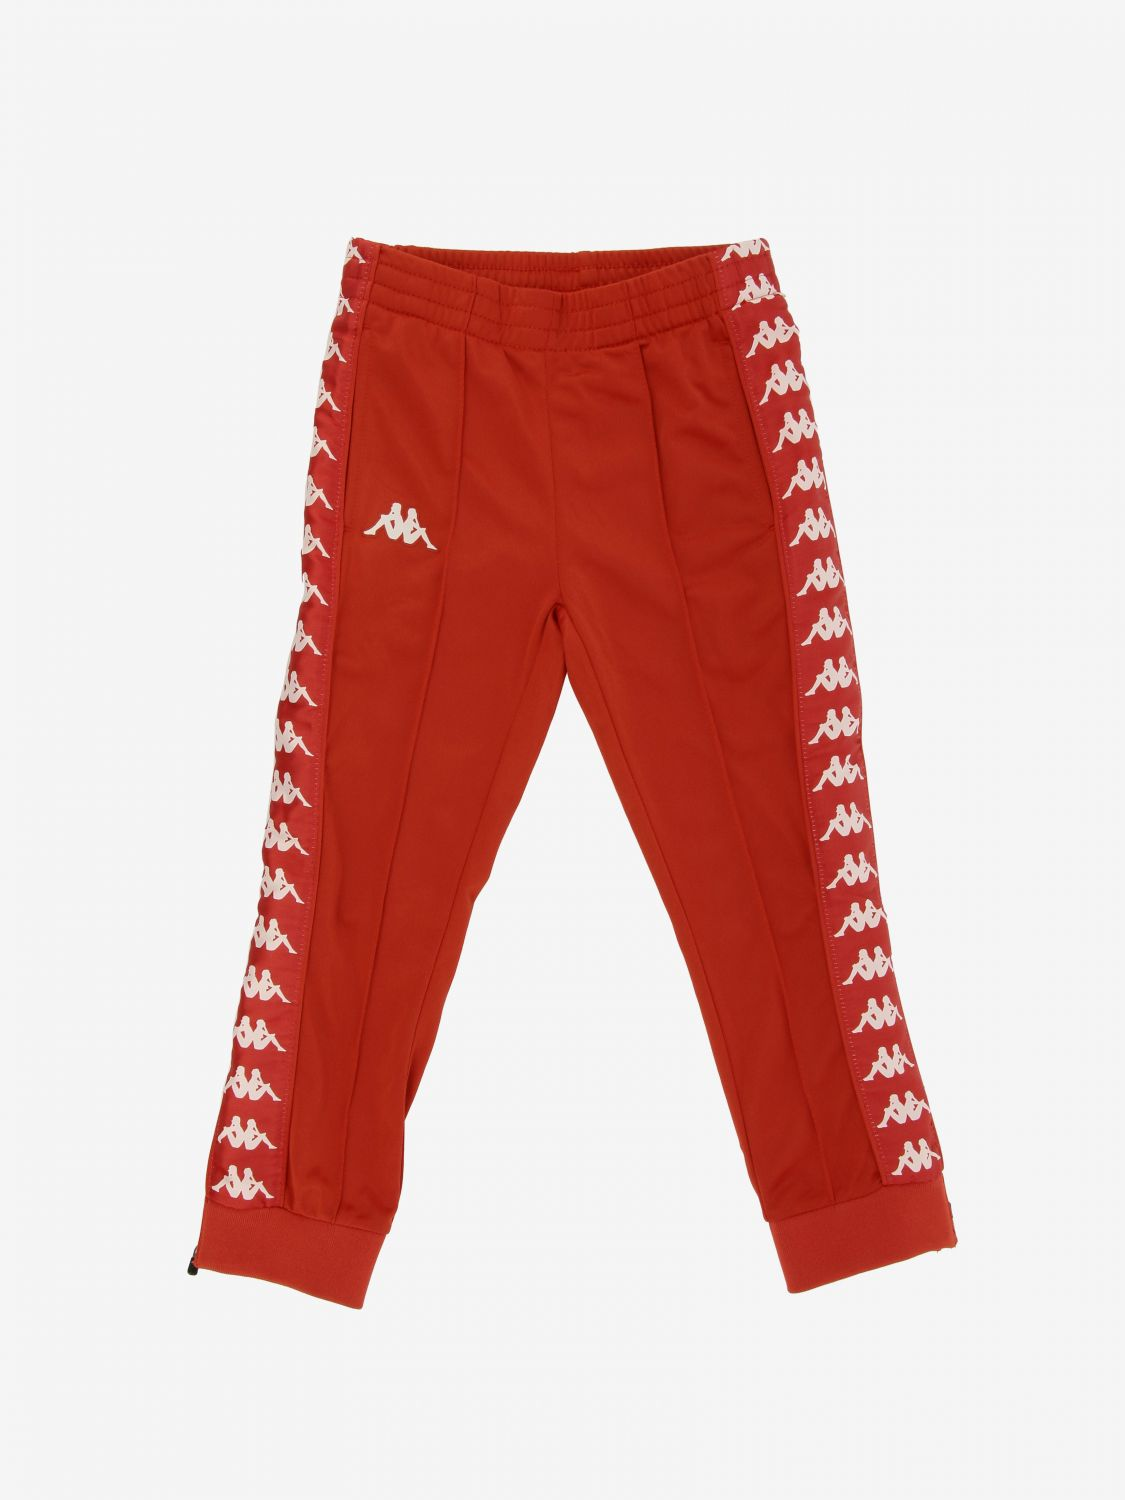 Kappa jogging trousers with logo red 1